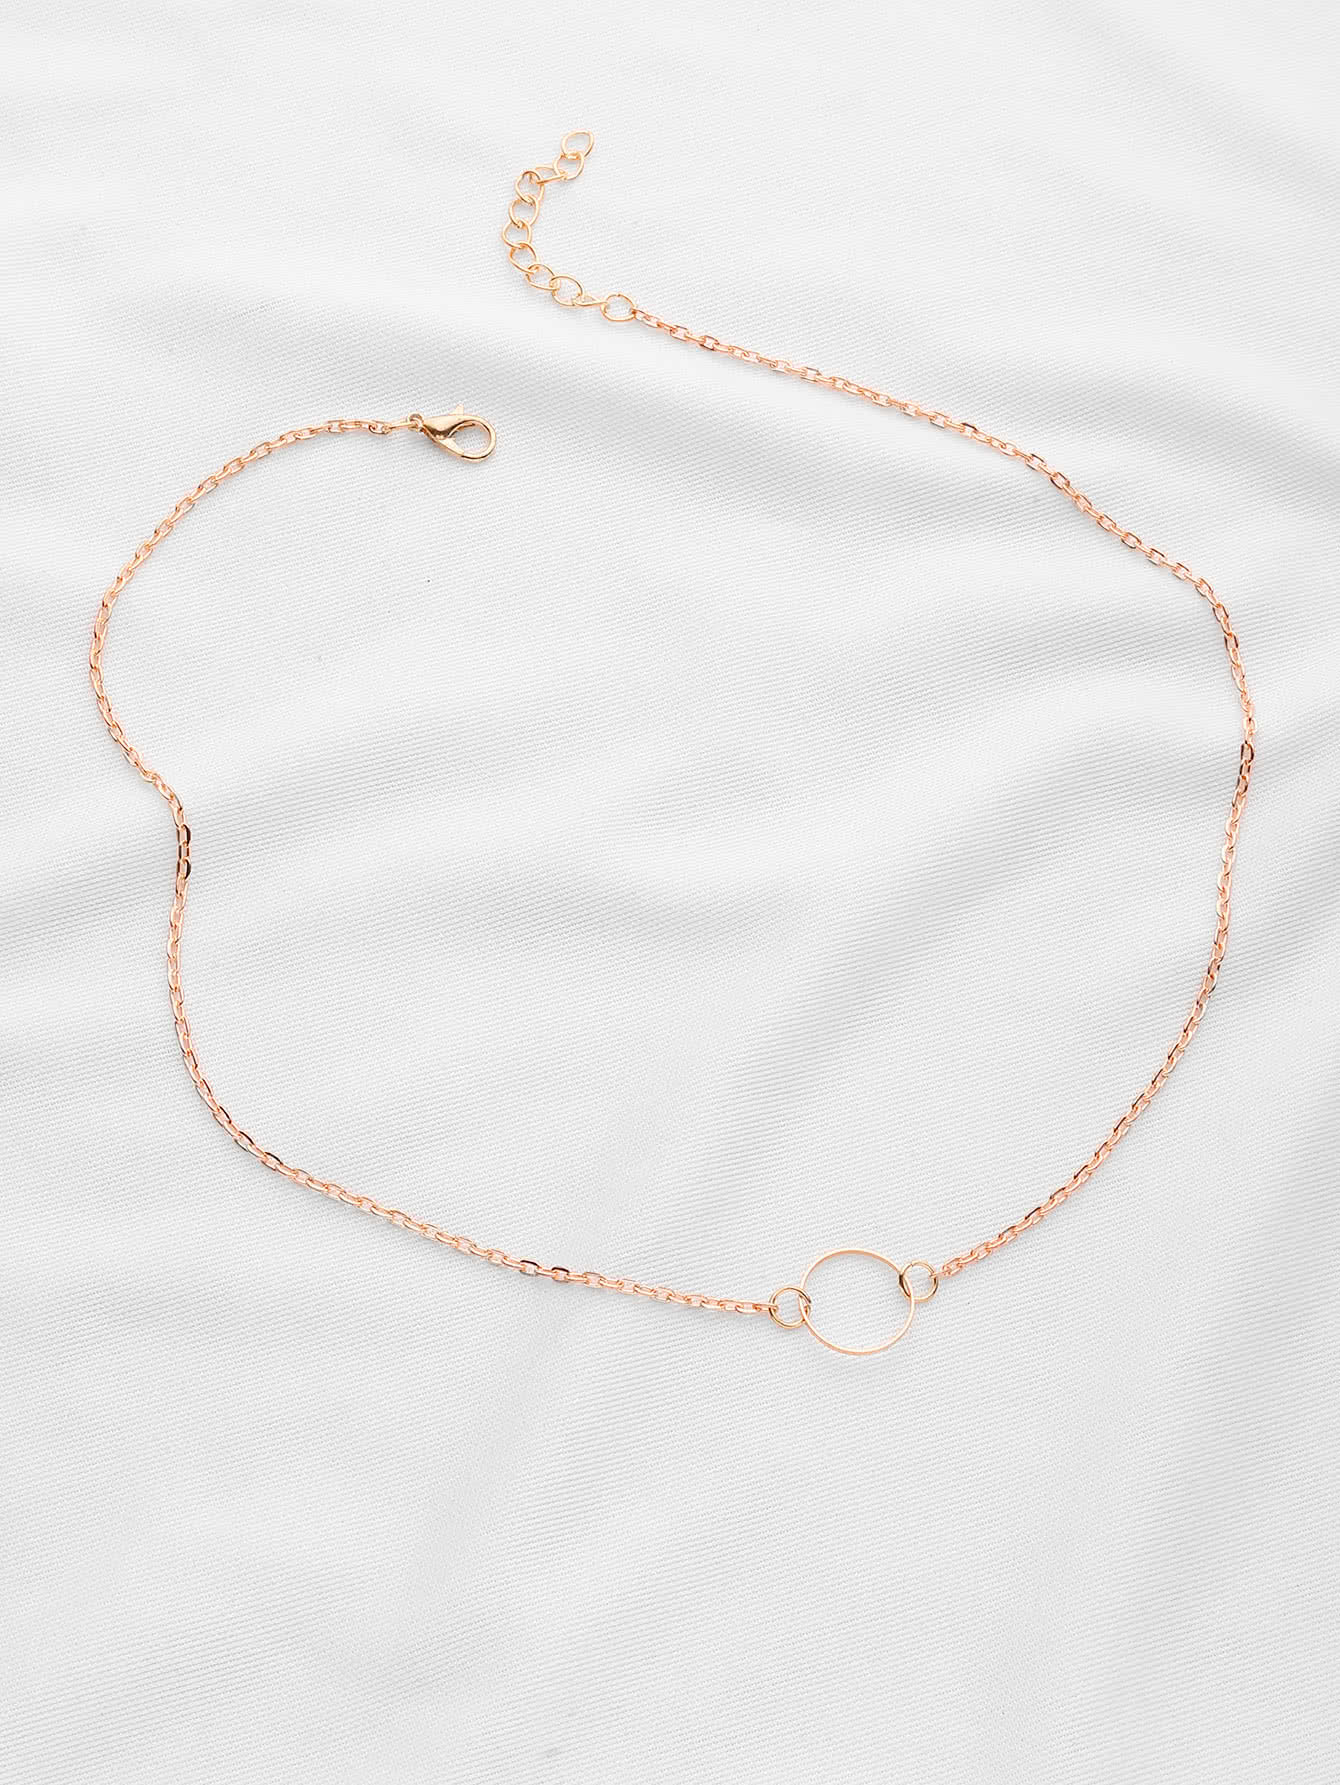 products chain link necklace rose gold jewelry cat